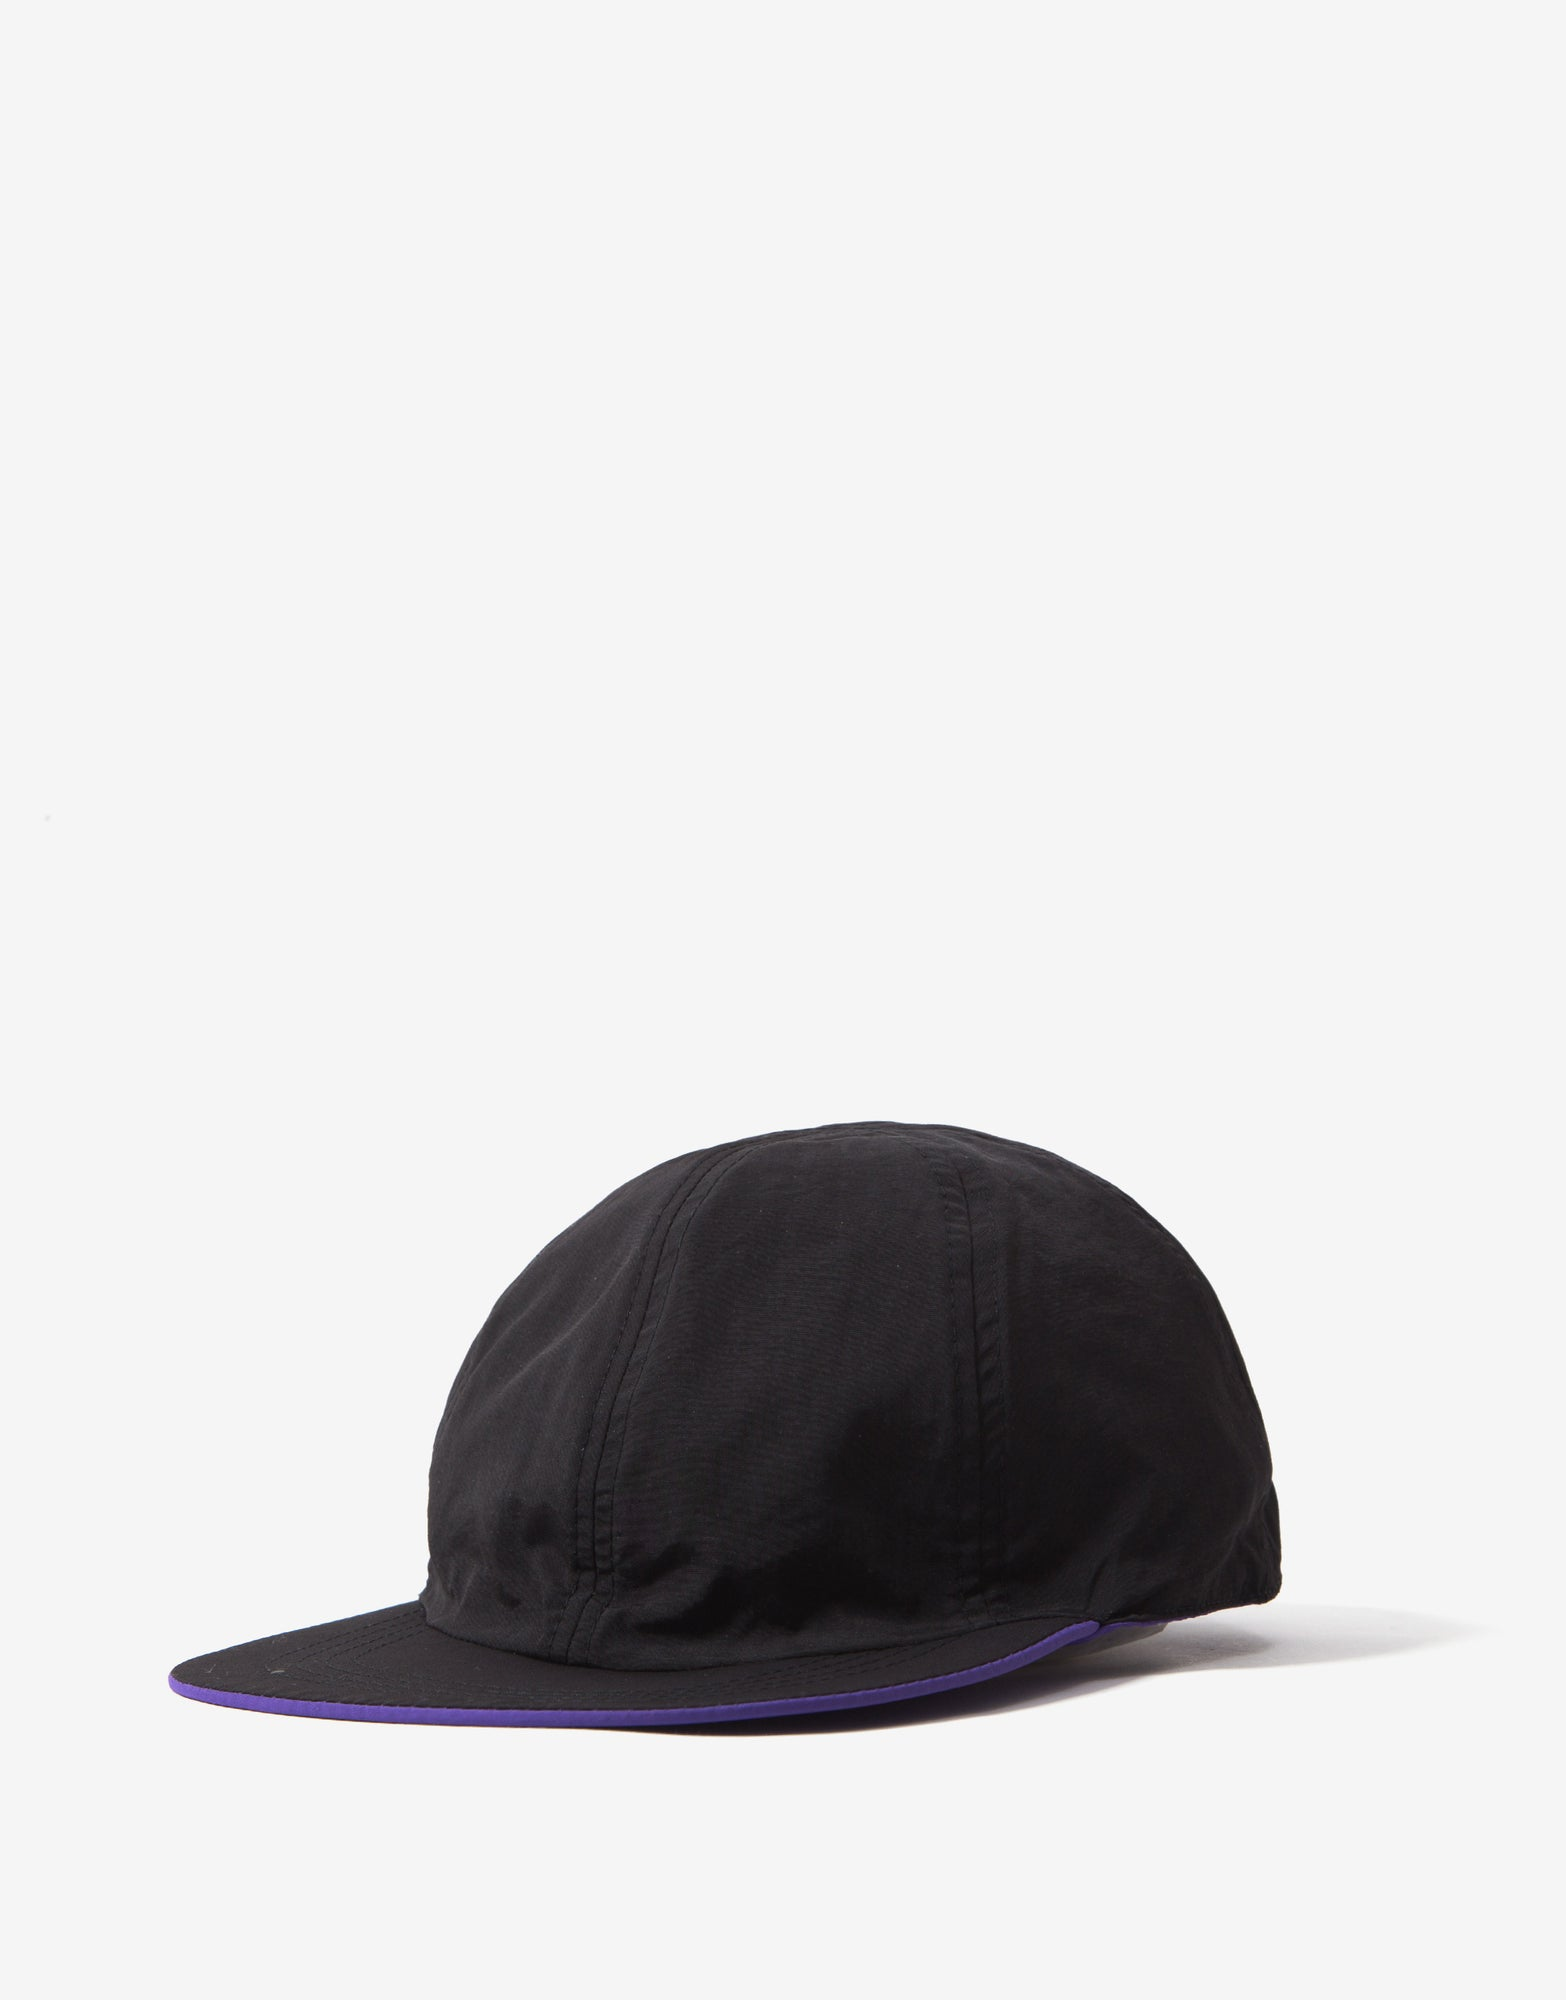 Butter Goods Reversible 6 Panel Cap - Purple/Black